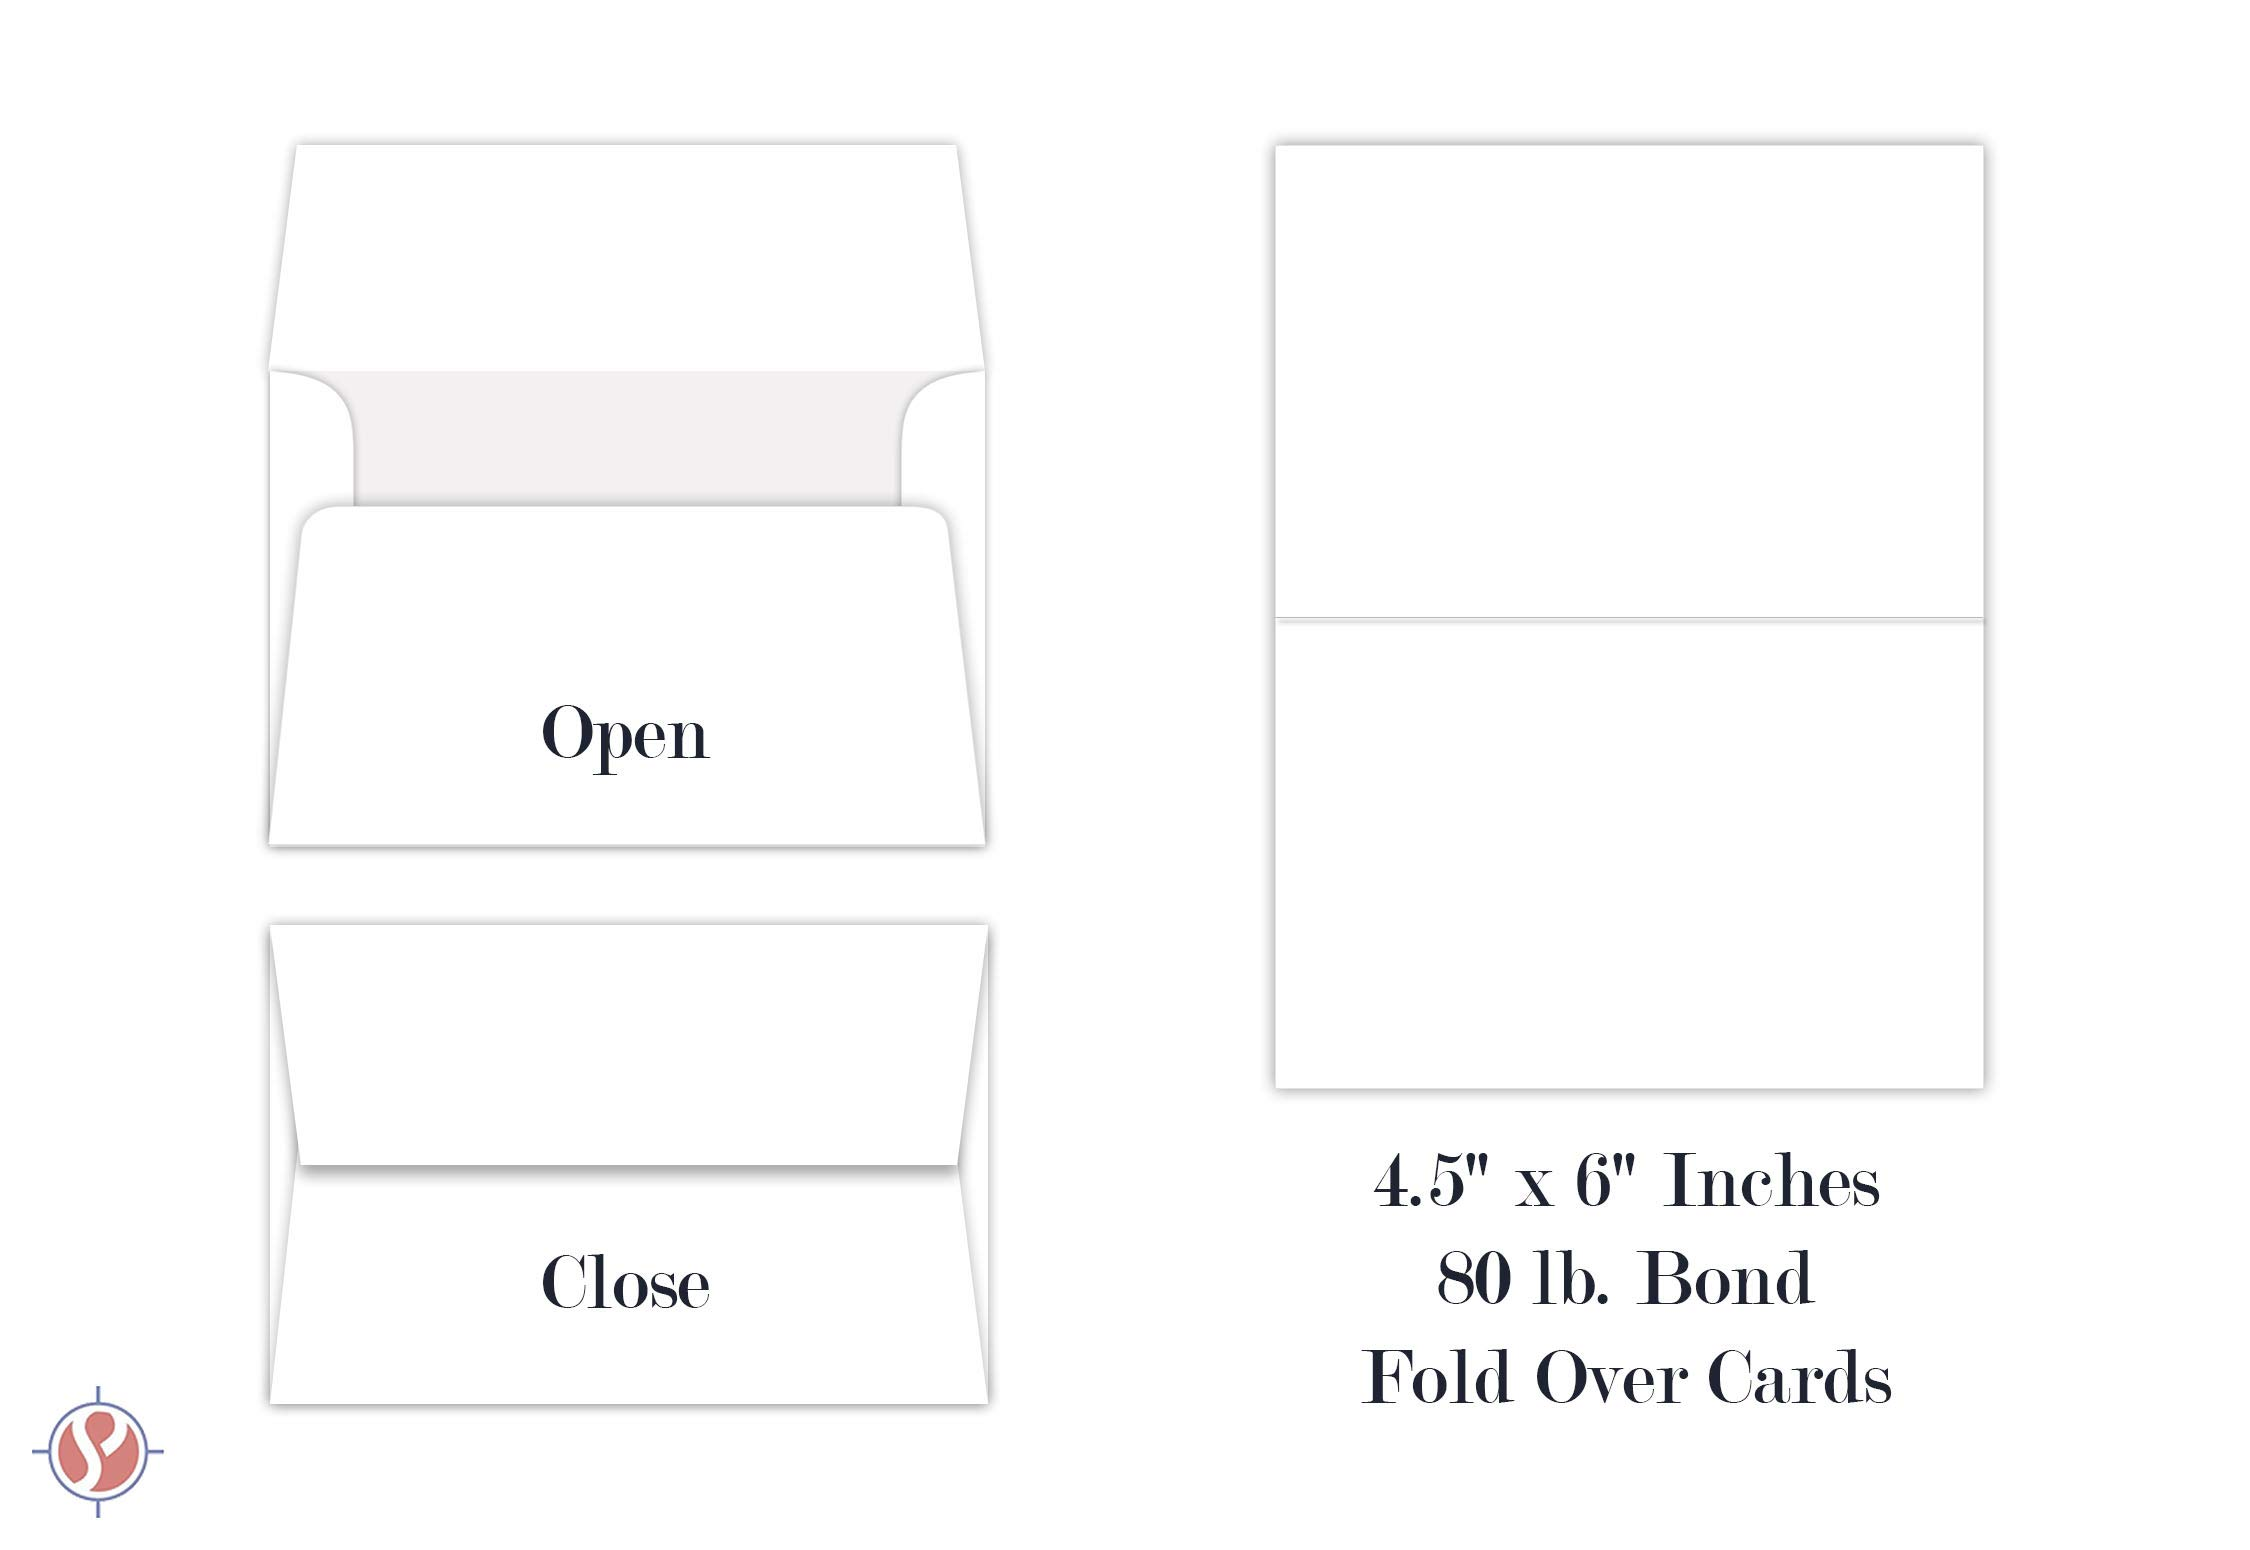 White Blank Greeting Fold Over Cards 80lb. Uncoated, 4 1/2 X 6 Inches Cards - 40 Foldover Greeting Cards Cards and Envelopes by S Superfine Printing (Image #8)